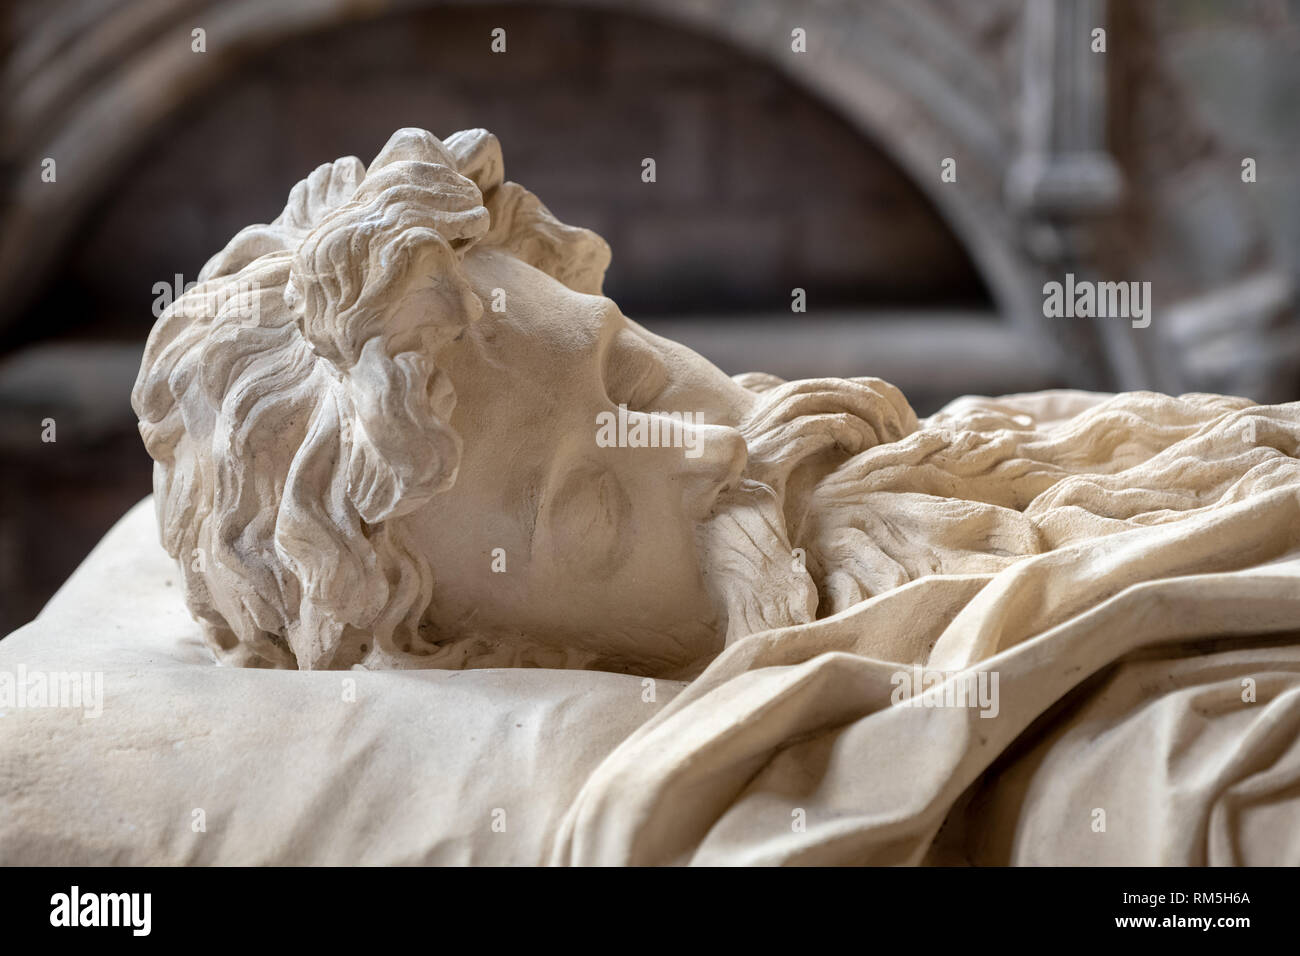 Close up of the tomb of the 8th Marquess of Lothian, Robert Kerr, who died in 1870, Jedburgh Abbey, Jedburgh, Scottish Borders - Stock Image